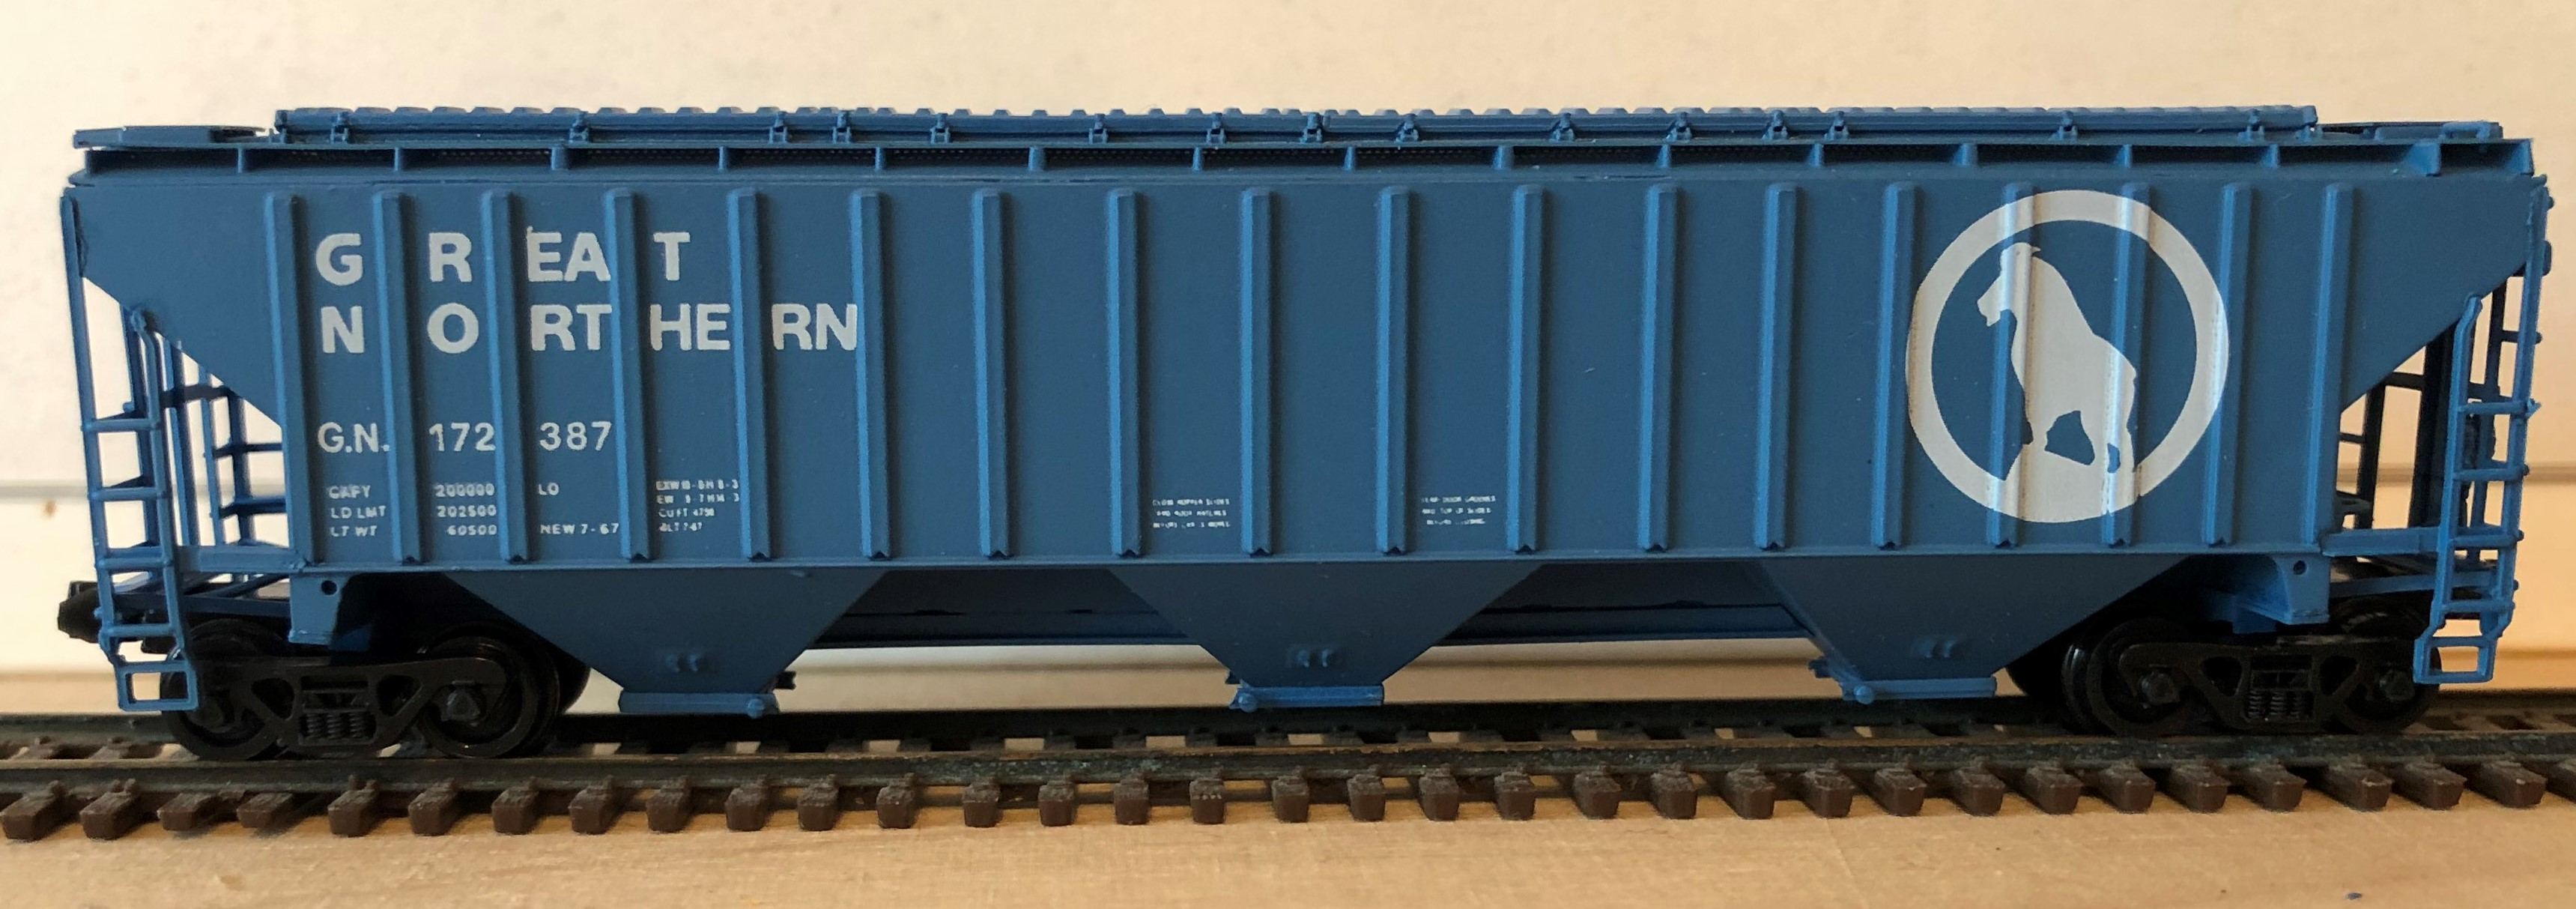 N Scale - Brooklyn Locomotive Works - BLW-1136B-B3 - Covered Hopper, 3-Bay, Thrall 4750 - Great Northern - 172387